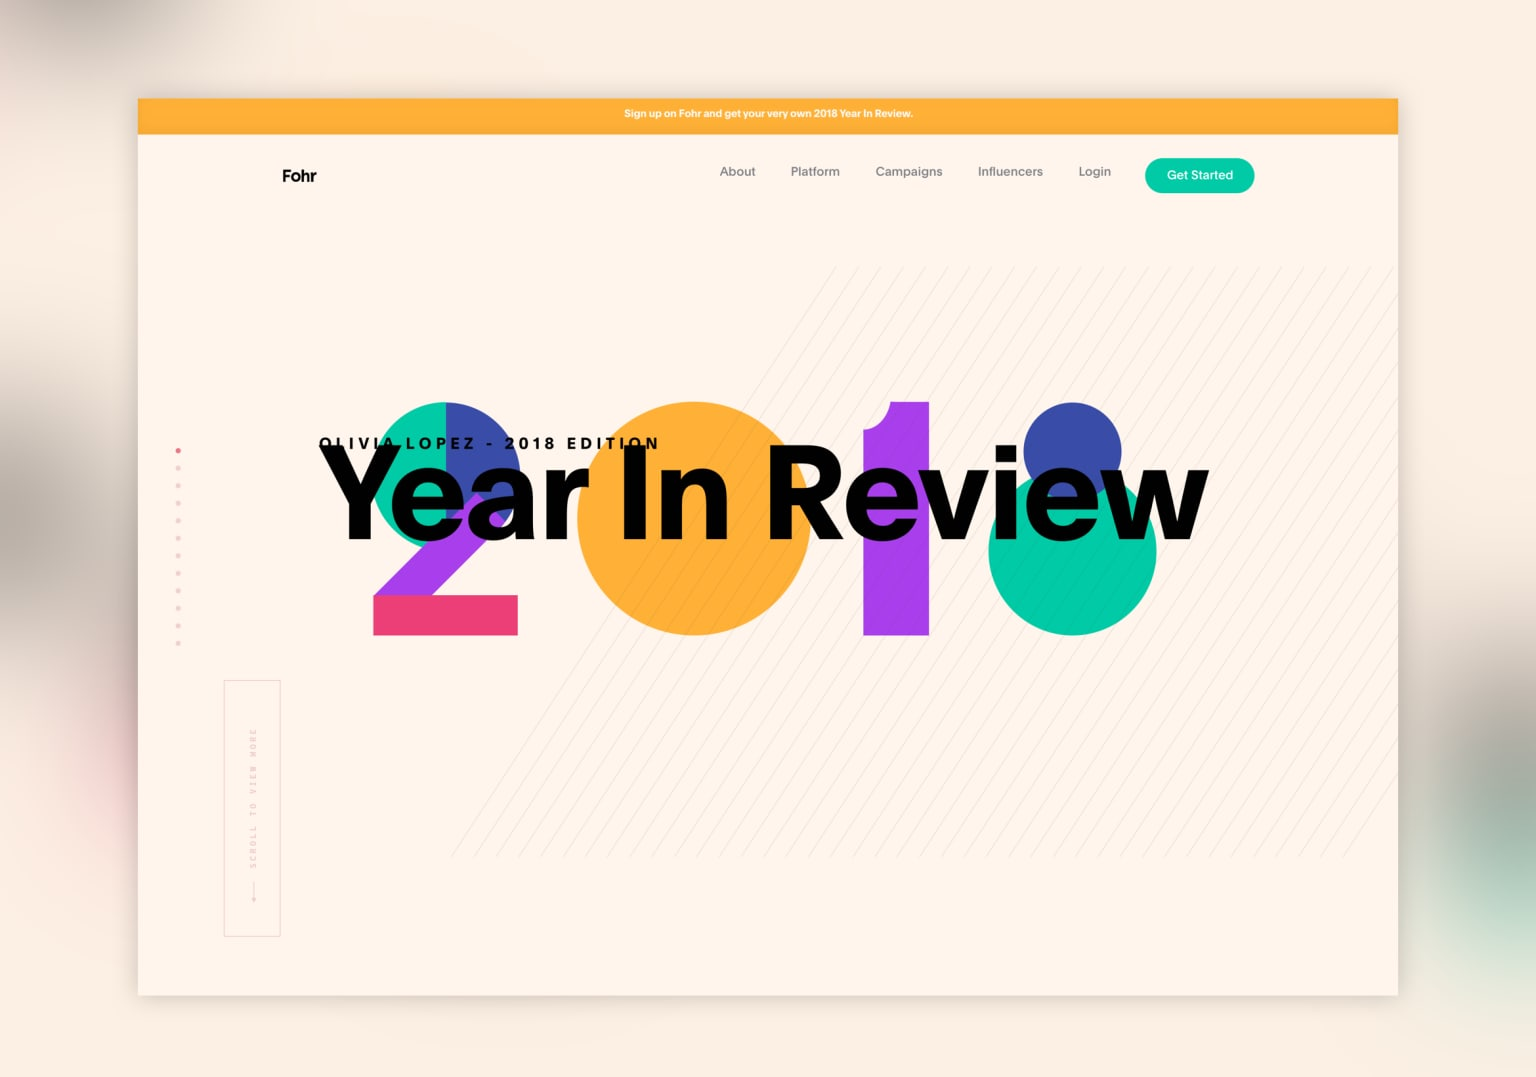 Fohr 2018 Year in Review